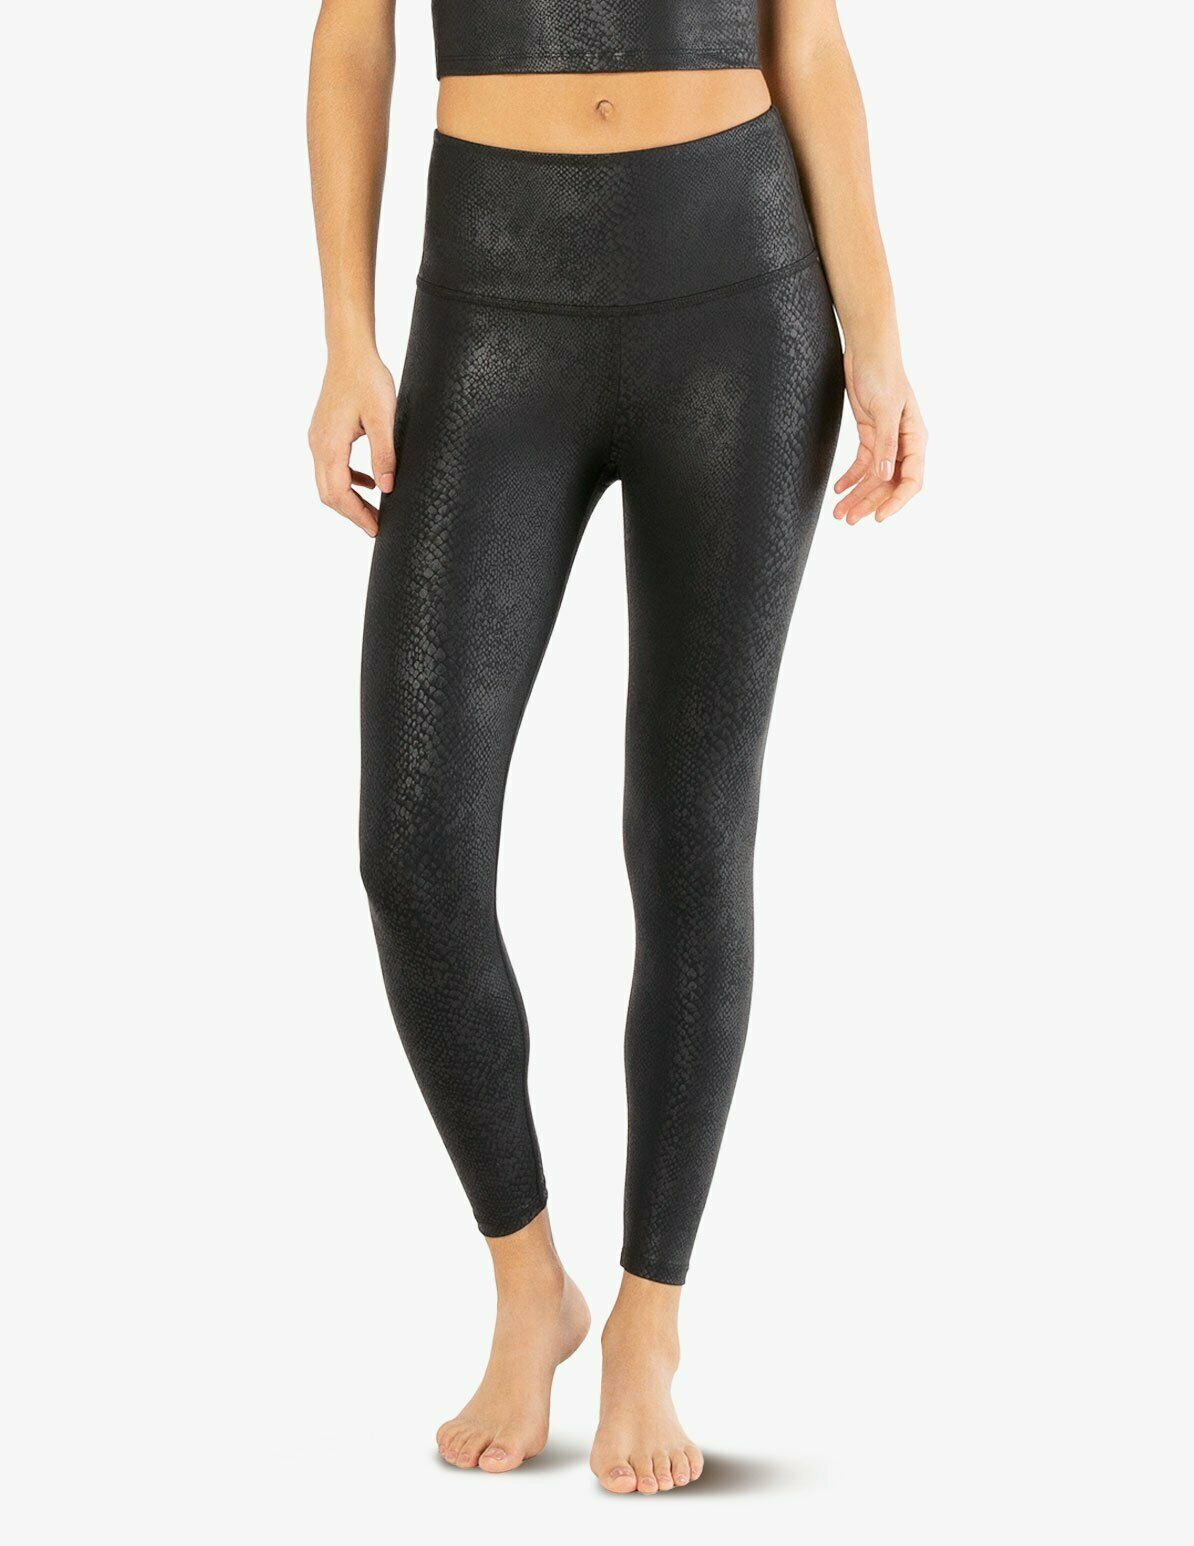 Special Offer: Beyond Yoga Brand Apparel – Viper High Waisted Midi Legging